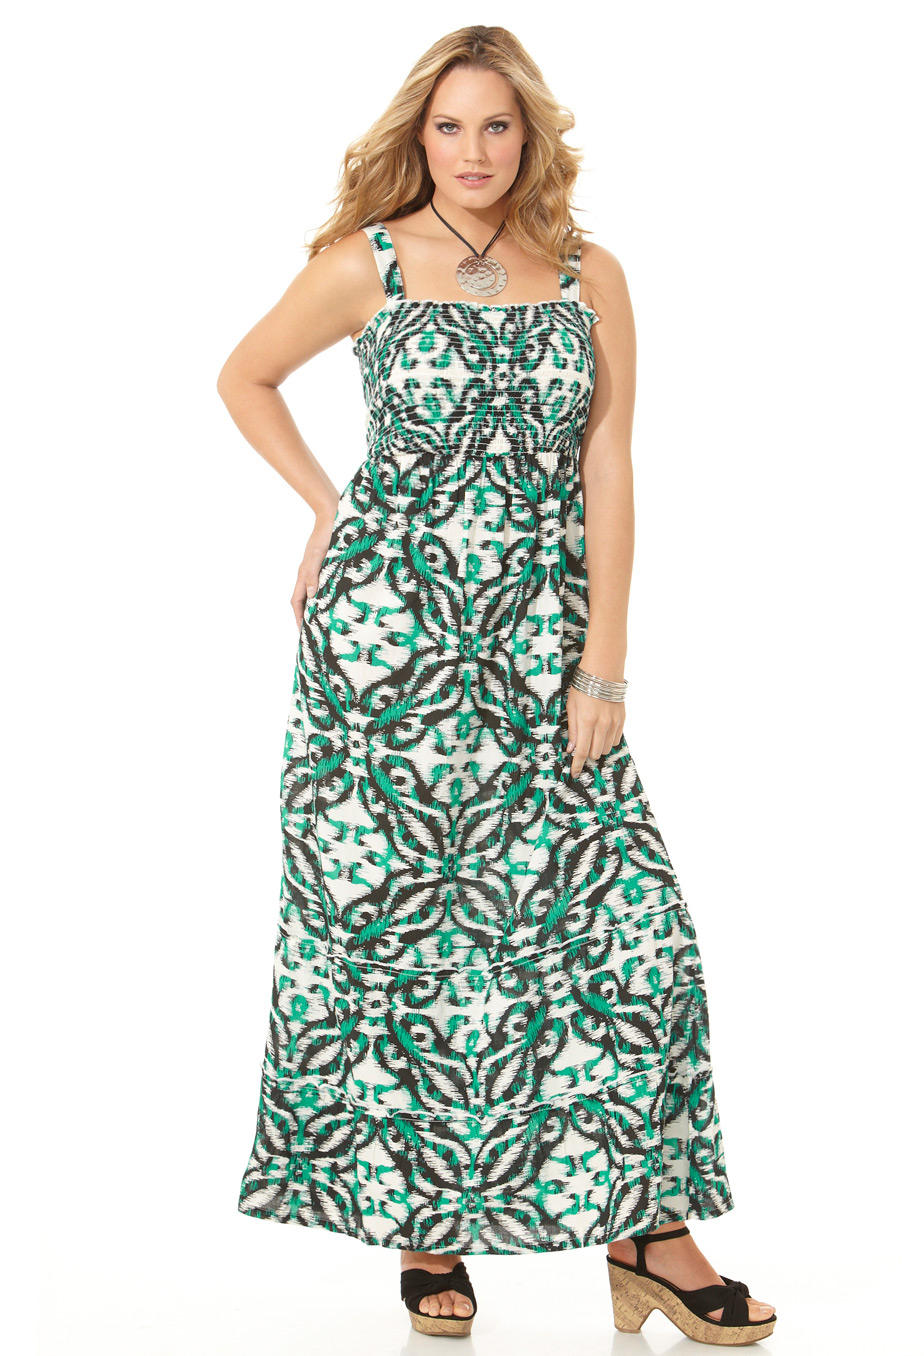 Most Flattering Styles of Sundresses for Plus Size Women ...